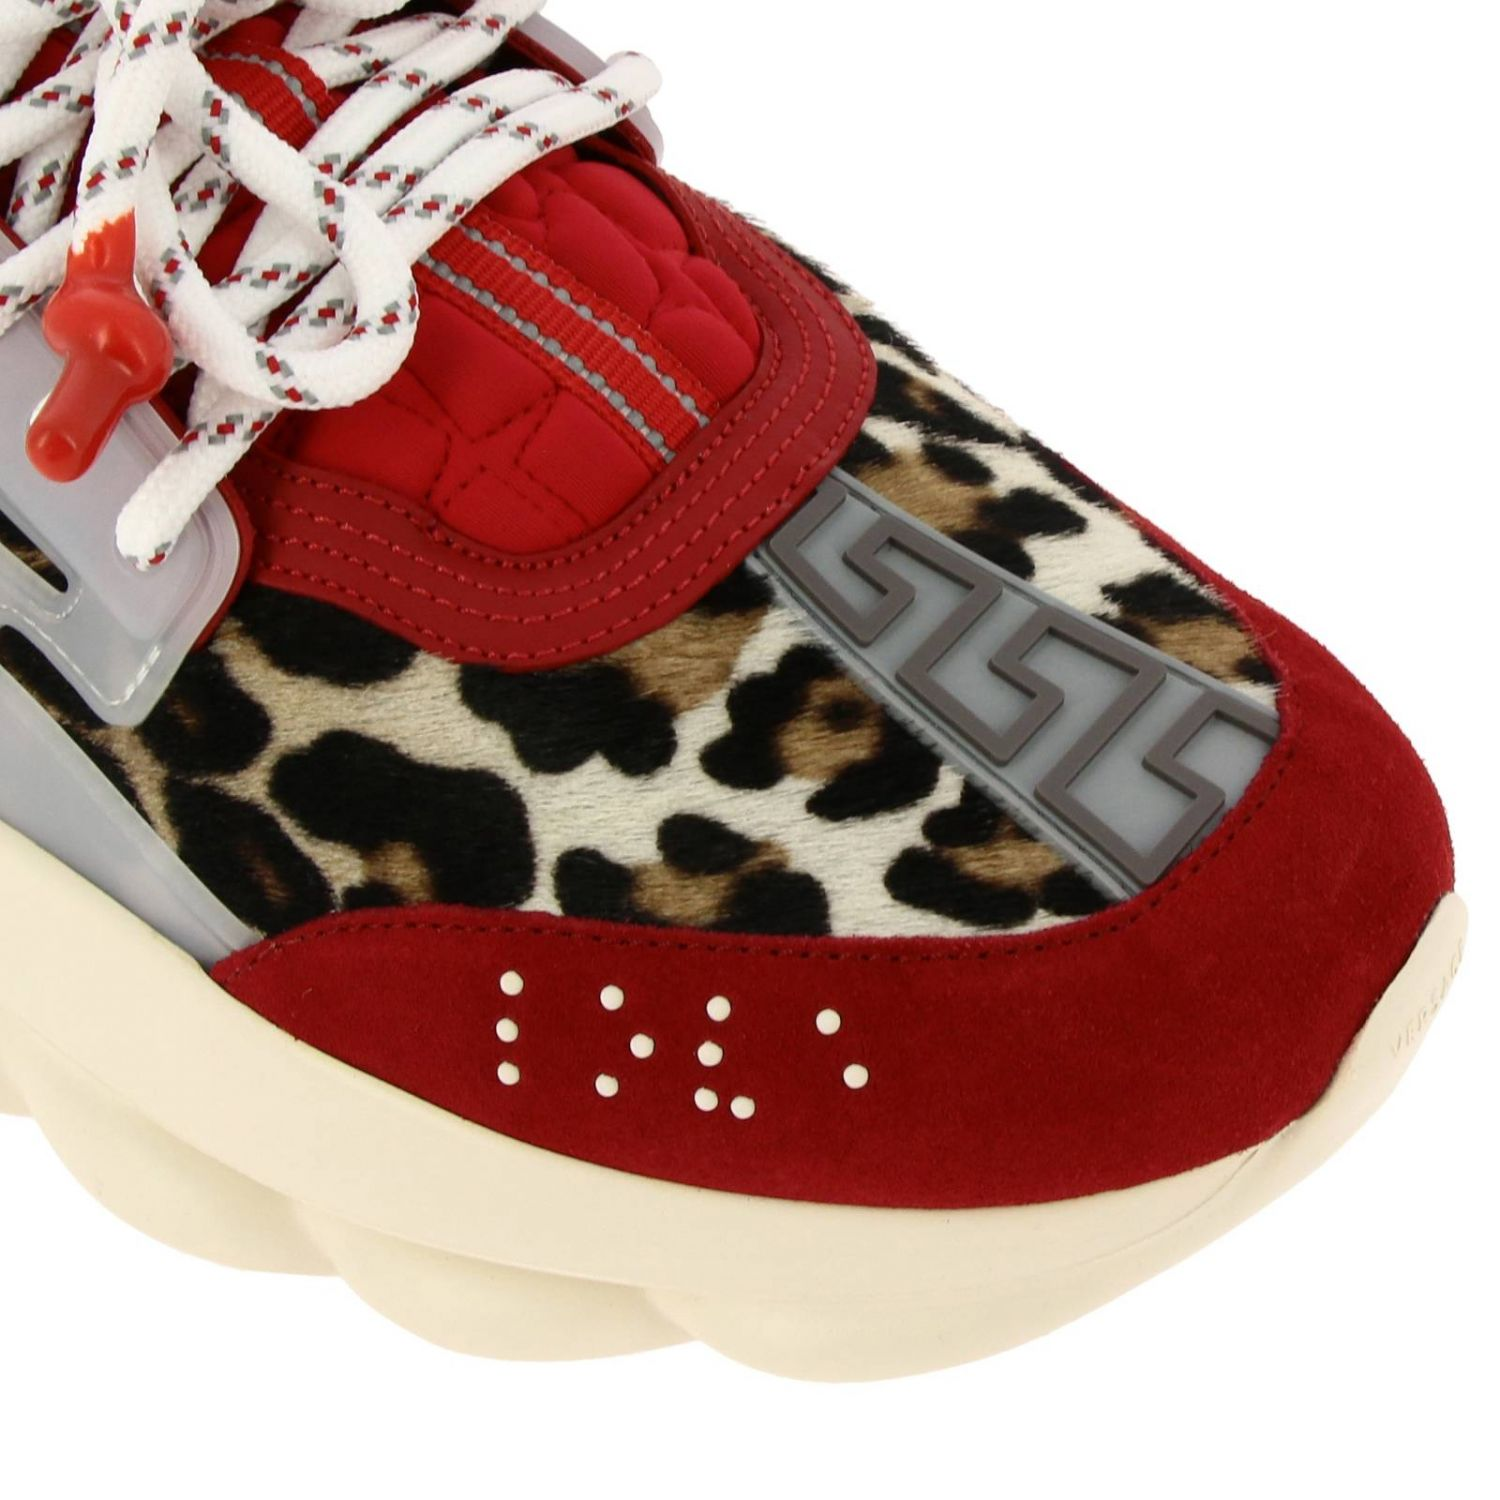 Trainers Versace: Versace Chain Reaction sneakers in neoprene and spotted fabric red 3